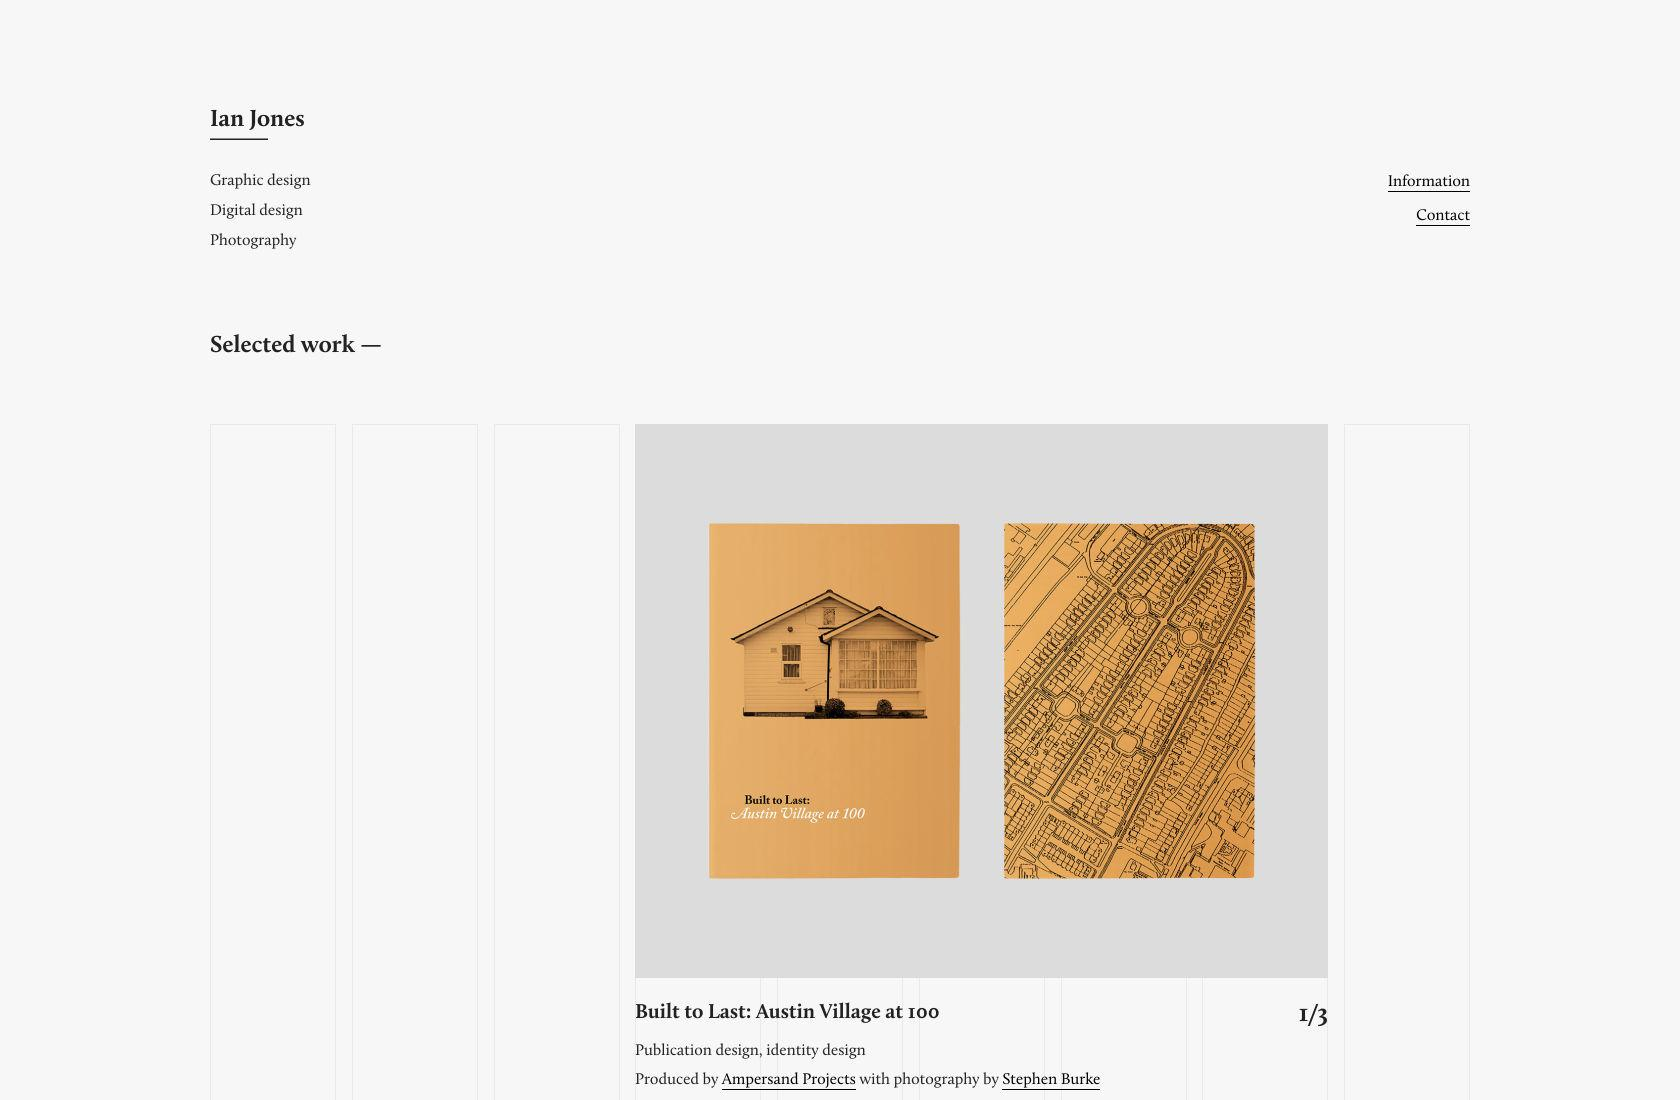 Minimal web design can still be visually engaging.